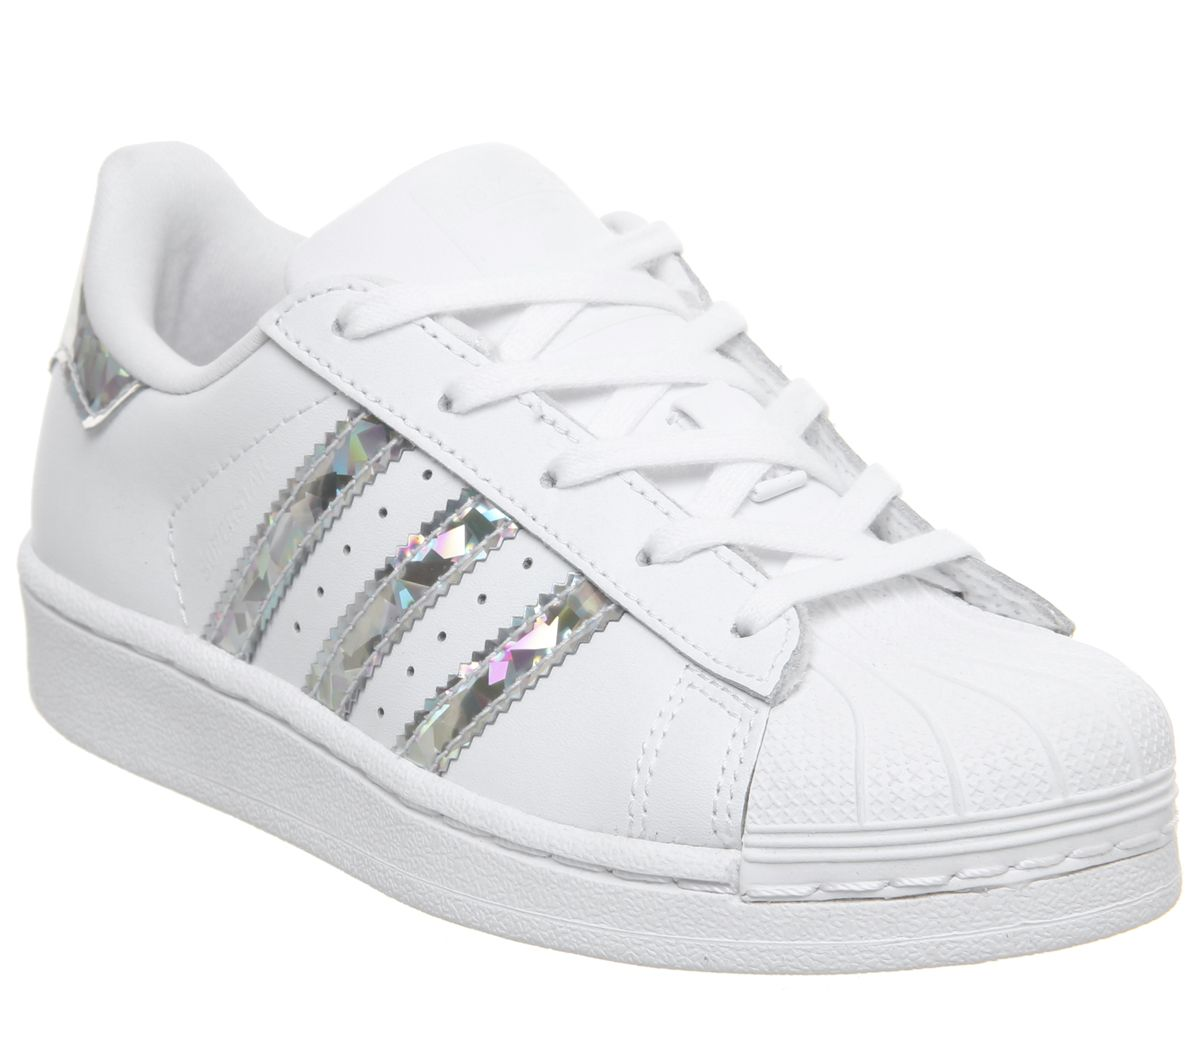 check out c553f 0e760 adidas Superstar Kids 10-2 Trainers Metallic Silver White - Unisex